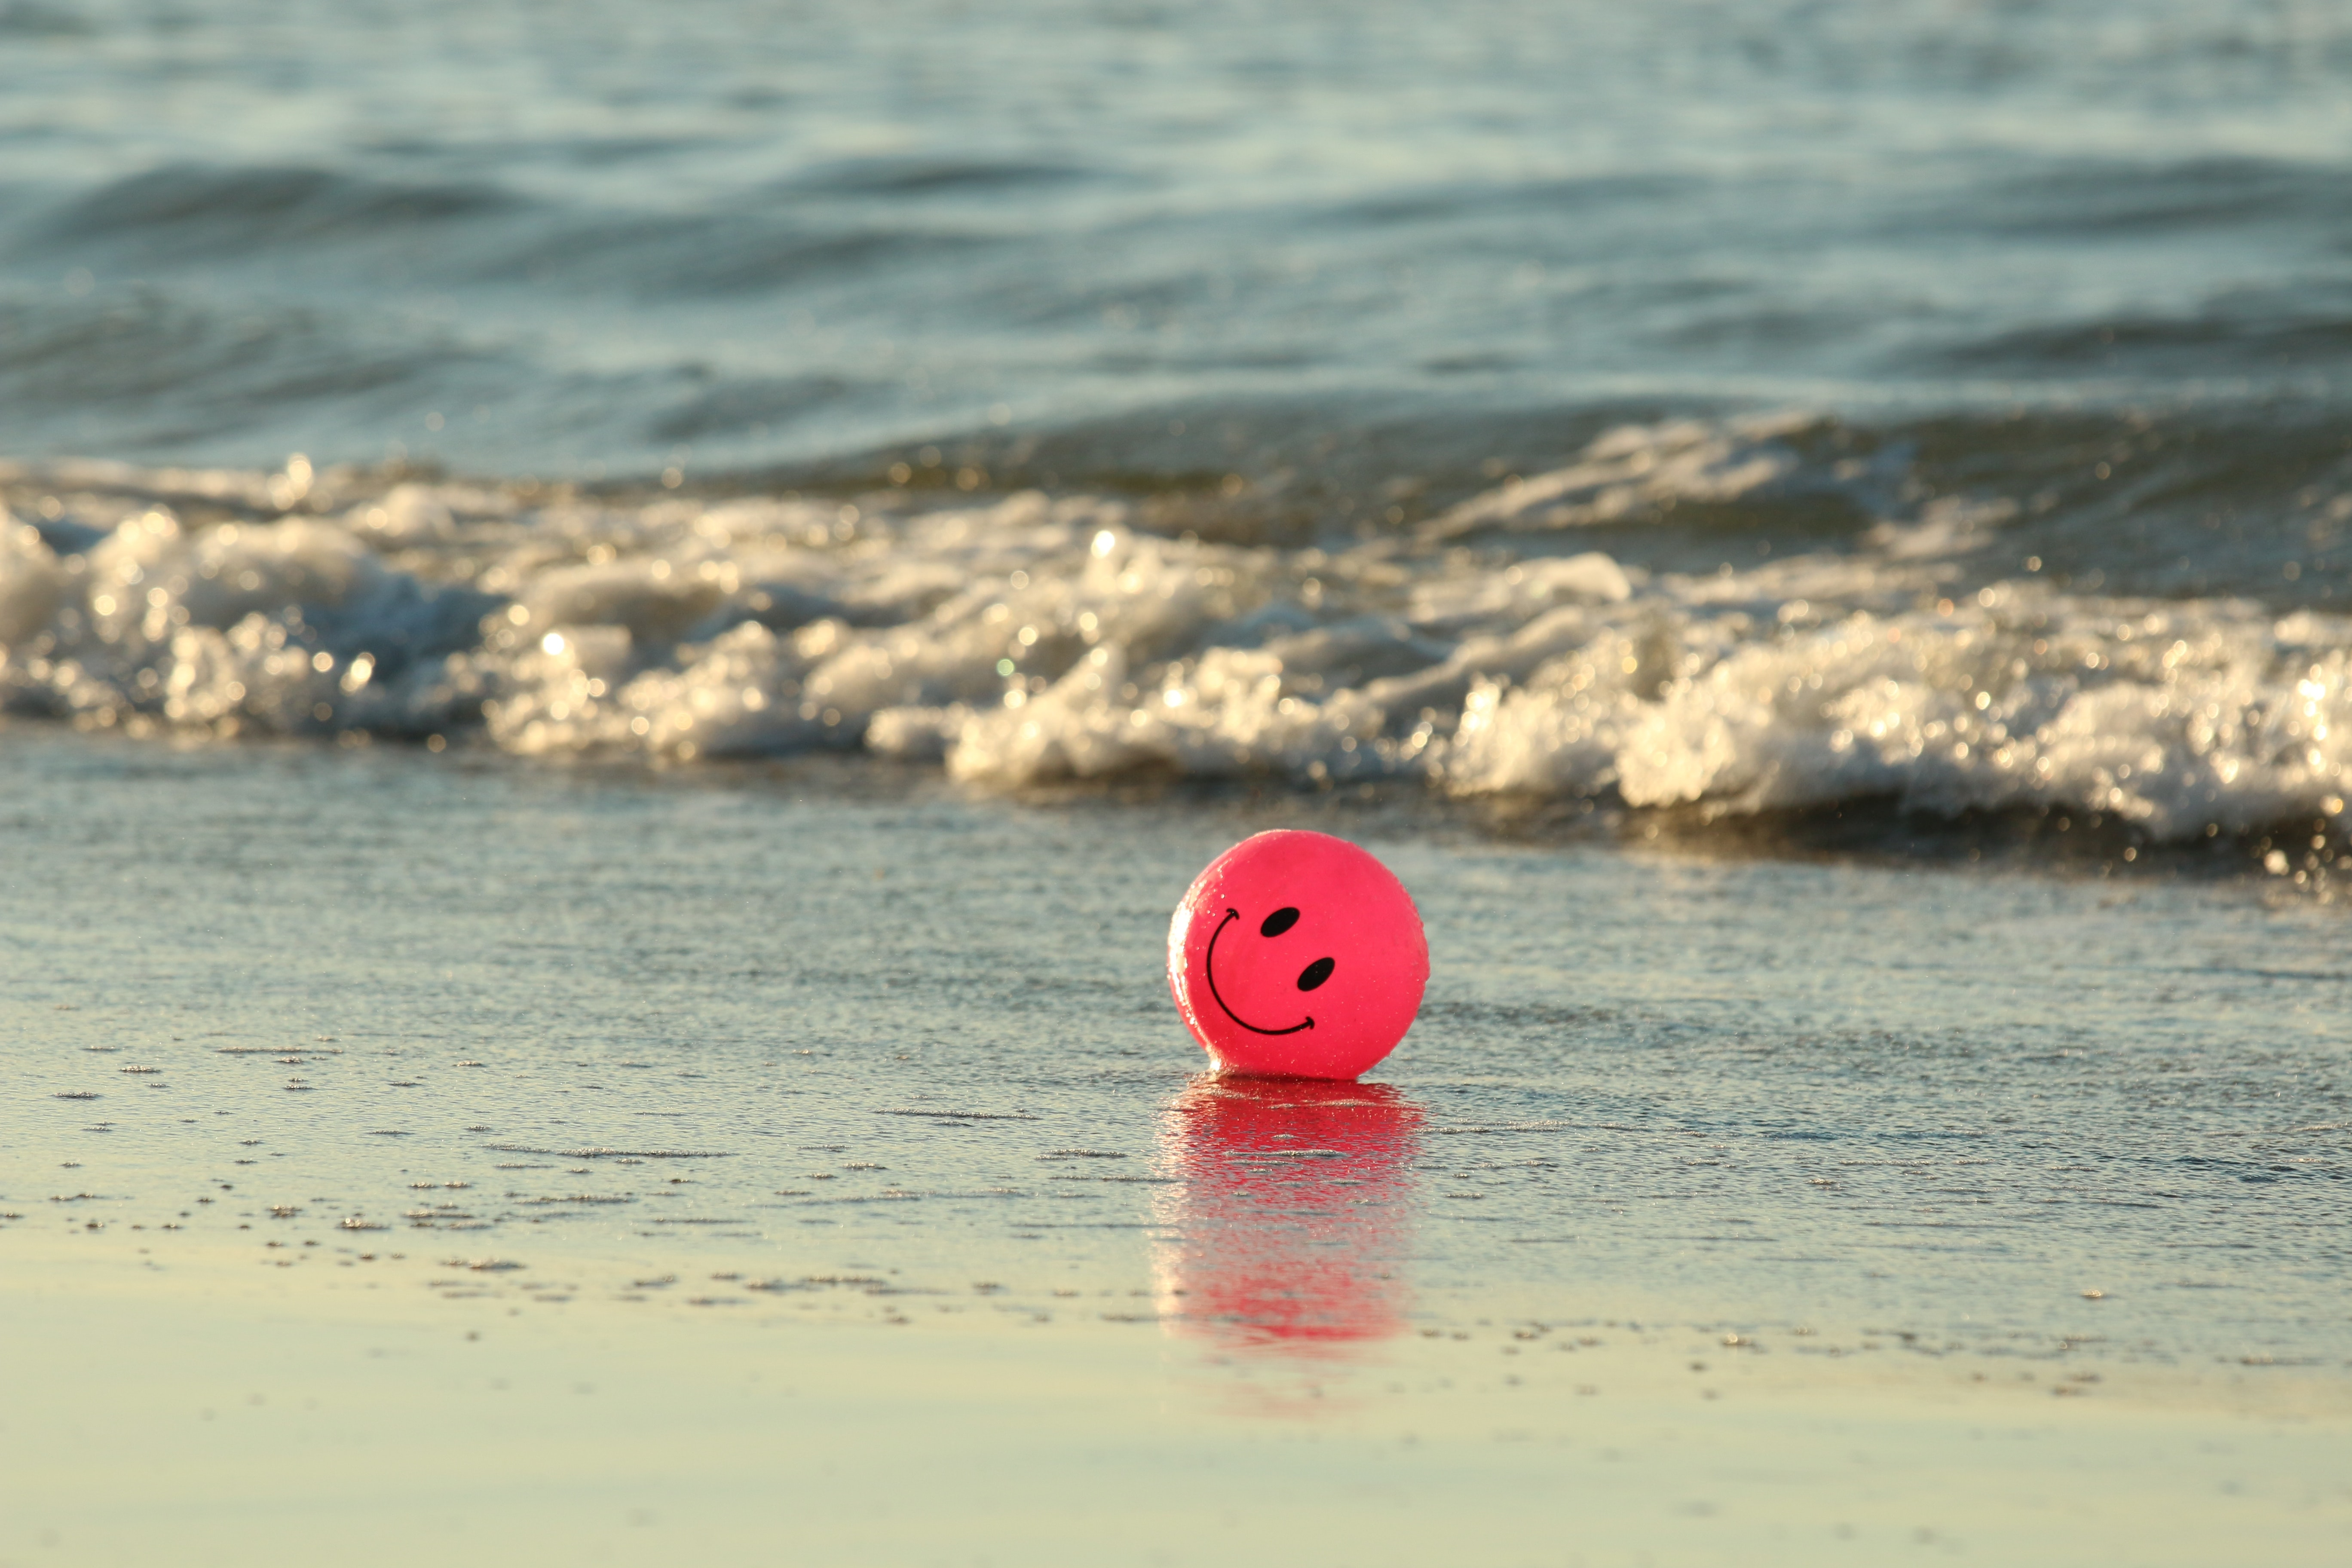 96900 Screensavers and Wallpapers Emoticon for phone. Download Water, Sea, Miscellanea, Miscellaneous, Balloon, Smile, Surf, Emoticon, Smiley pictures for free